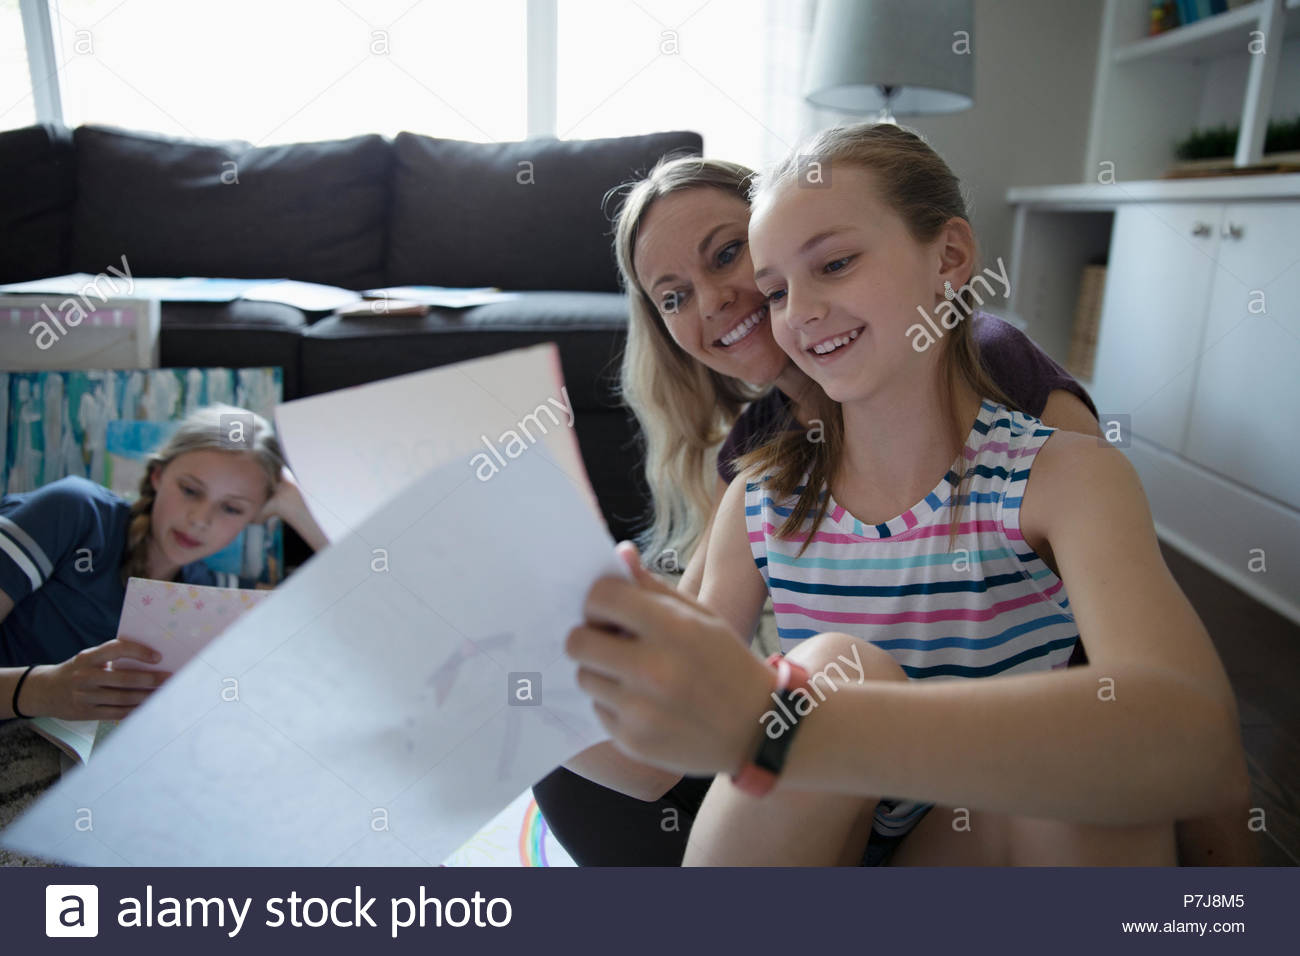 Daughter showing drawings to mother - Stock Image